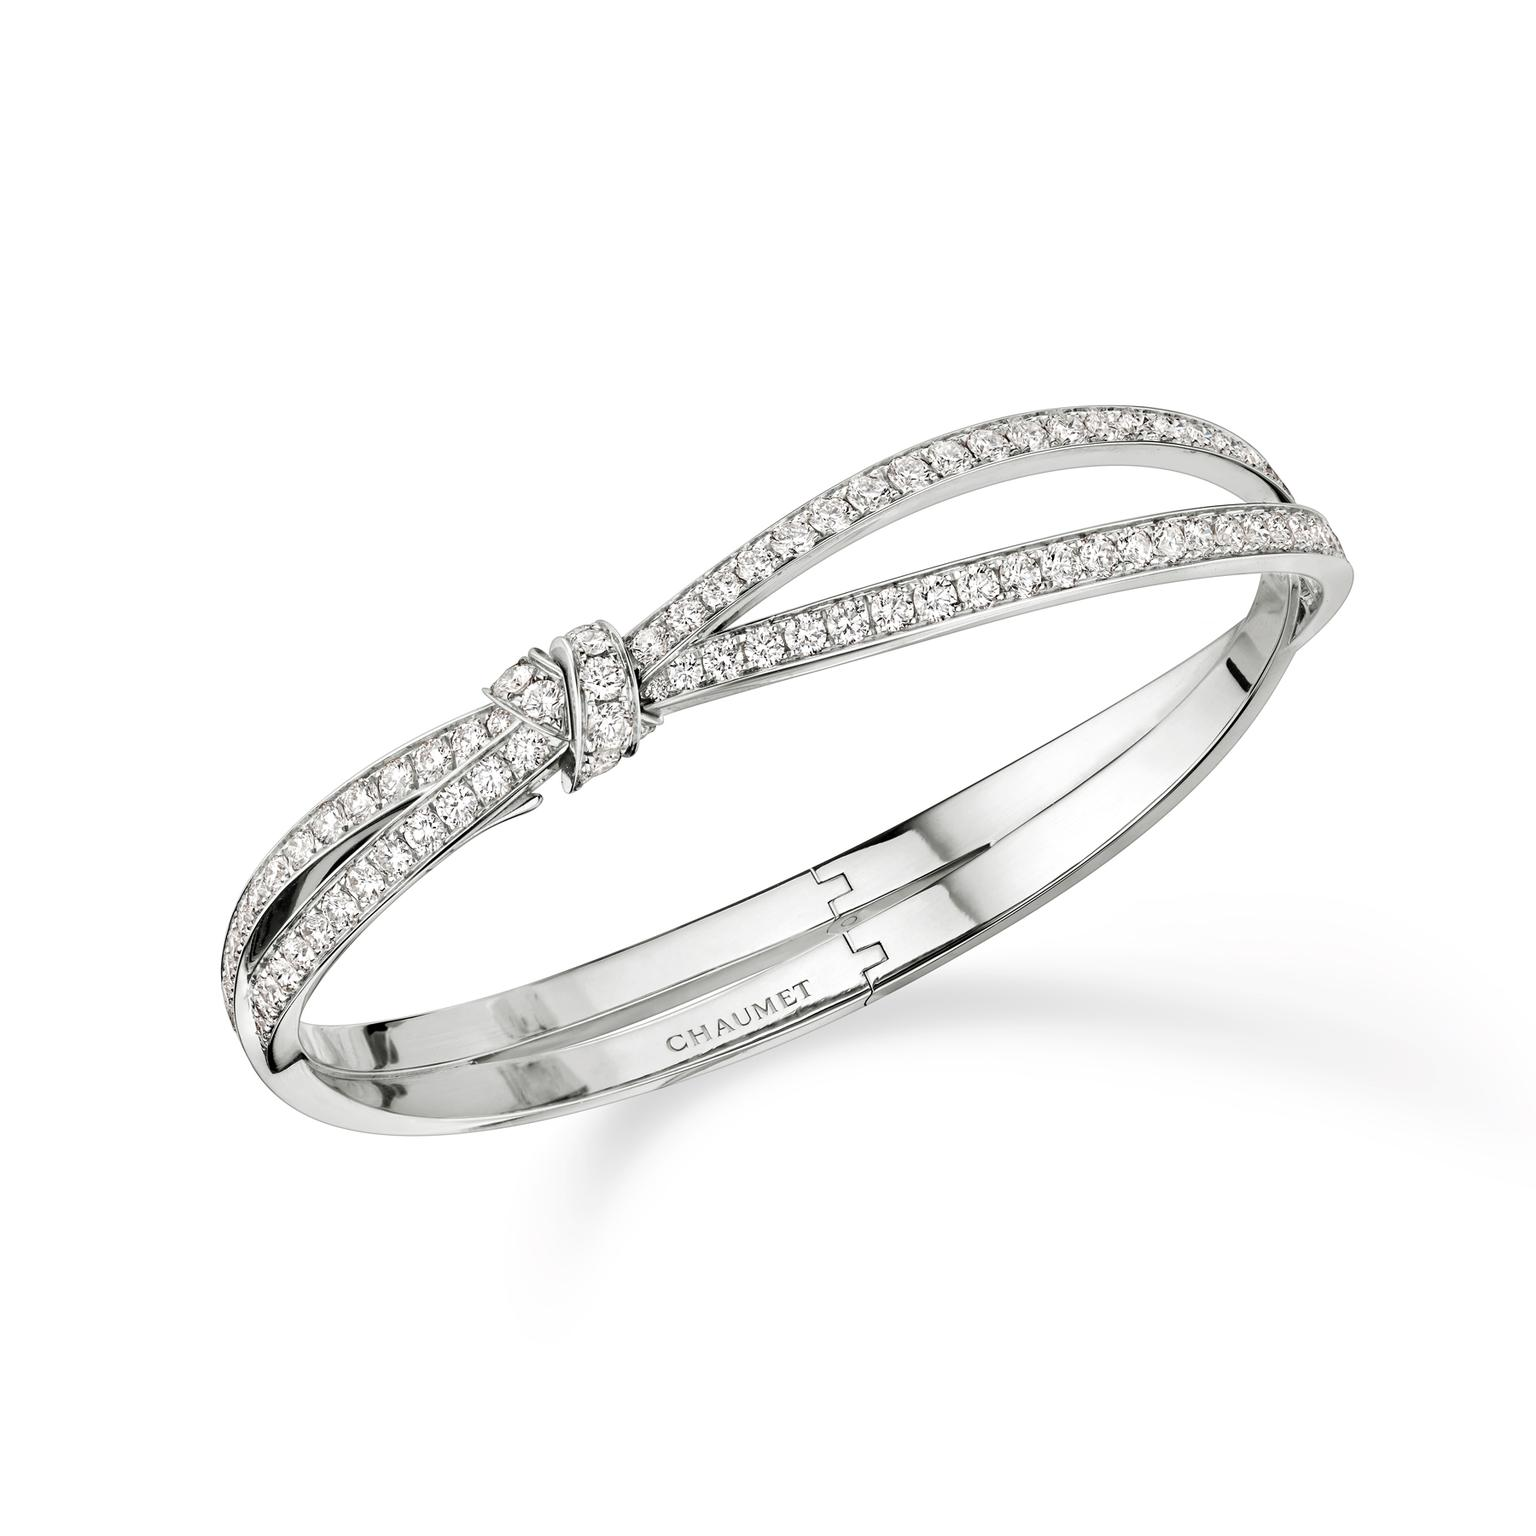 Chaumet Séduction white gold bracelet with diamonds